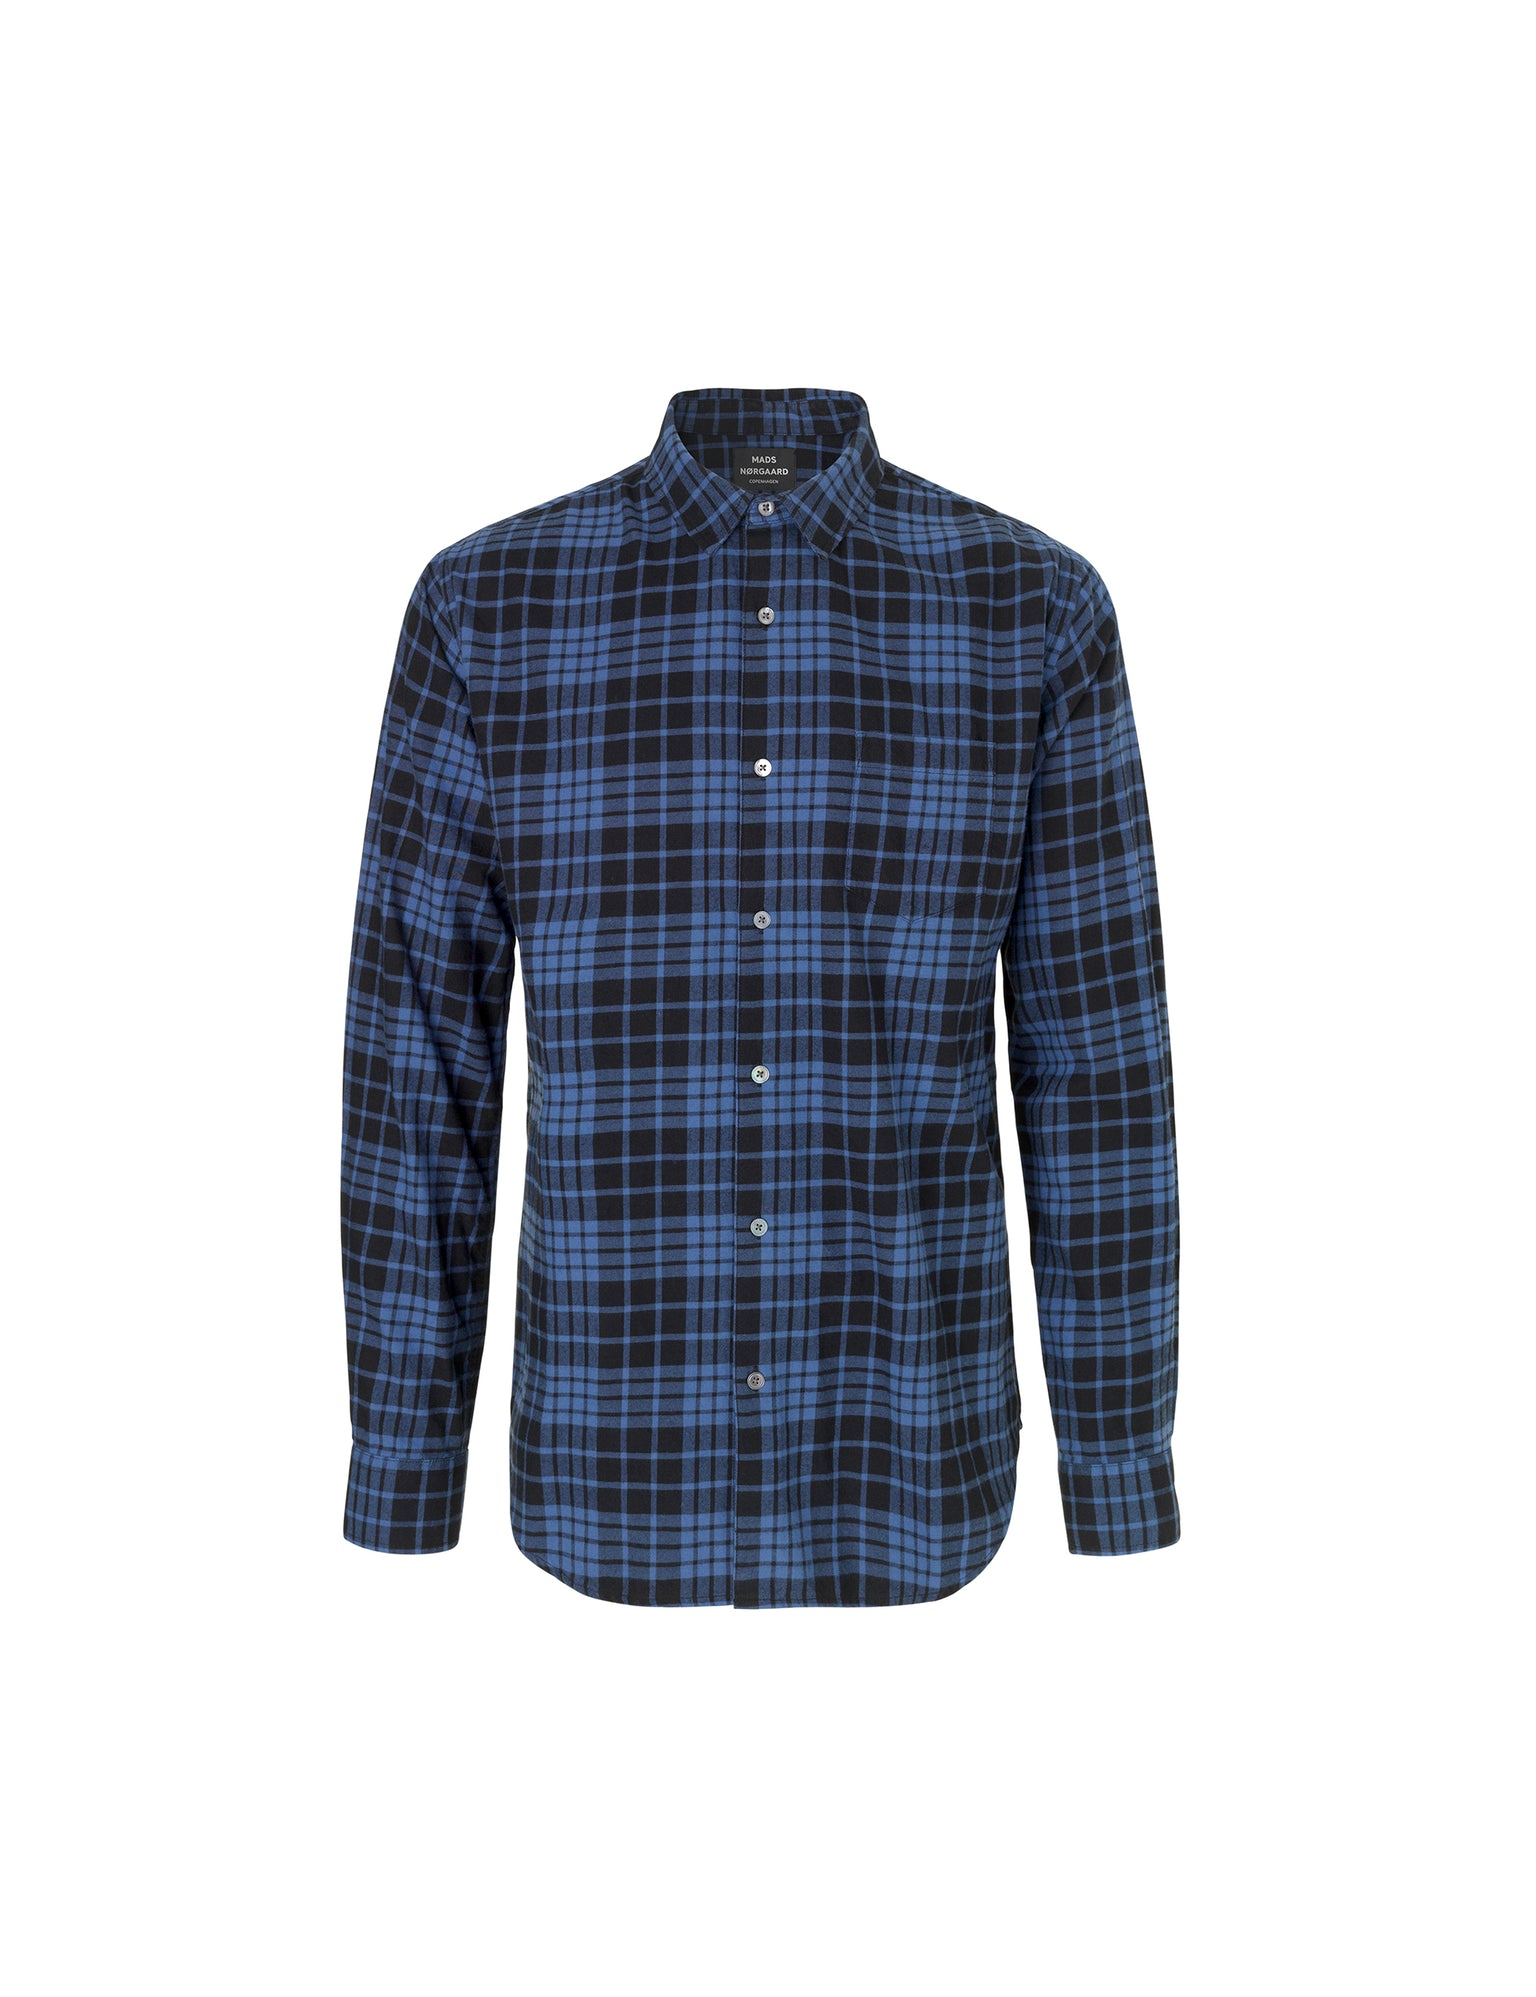 Colour Check Selik, True Navy/Black Check